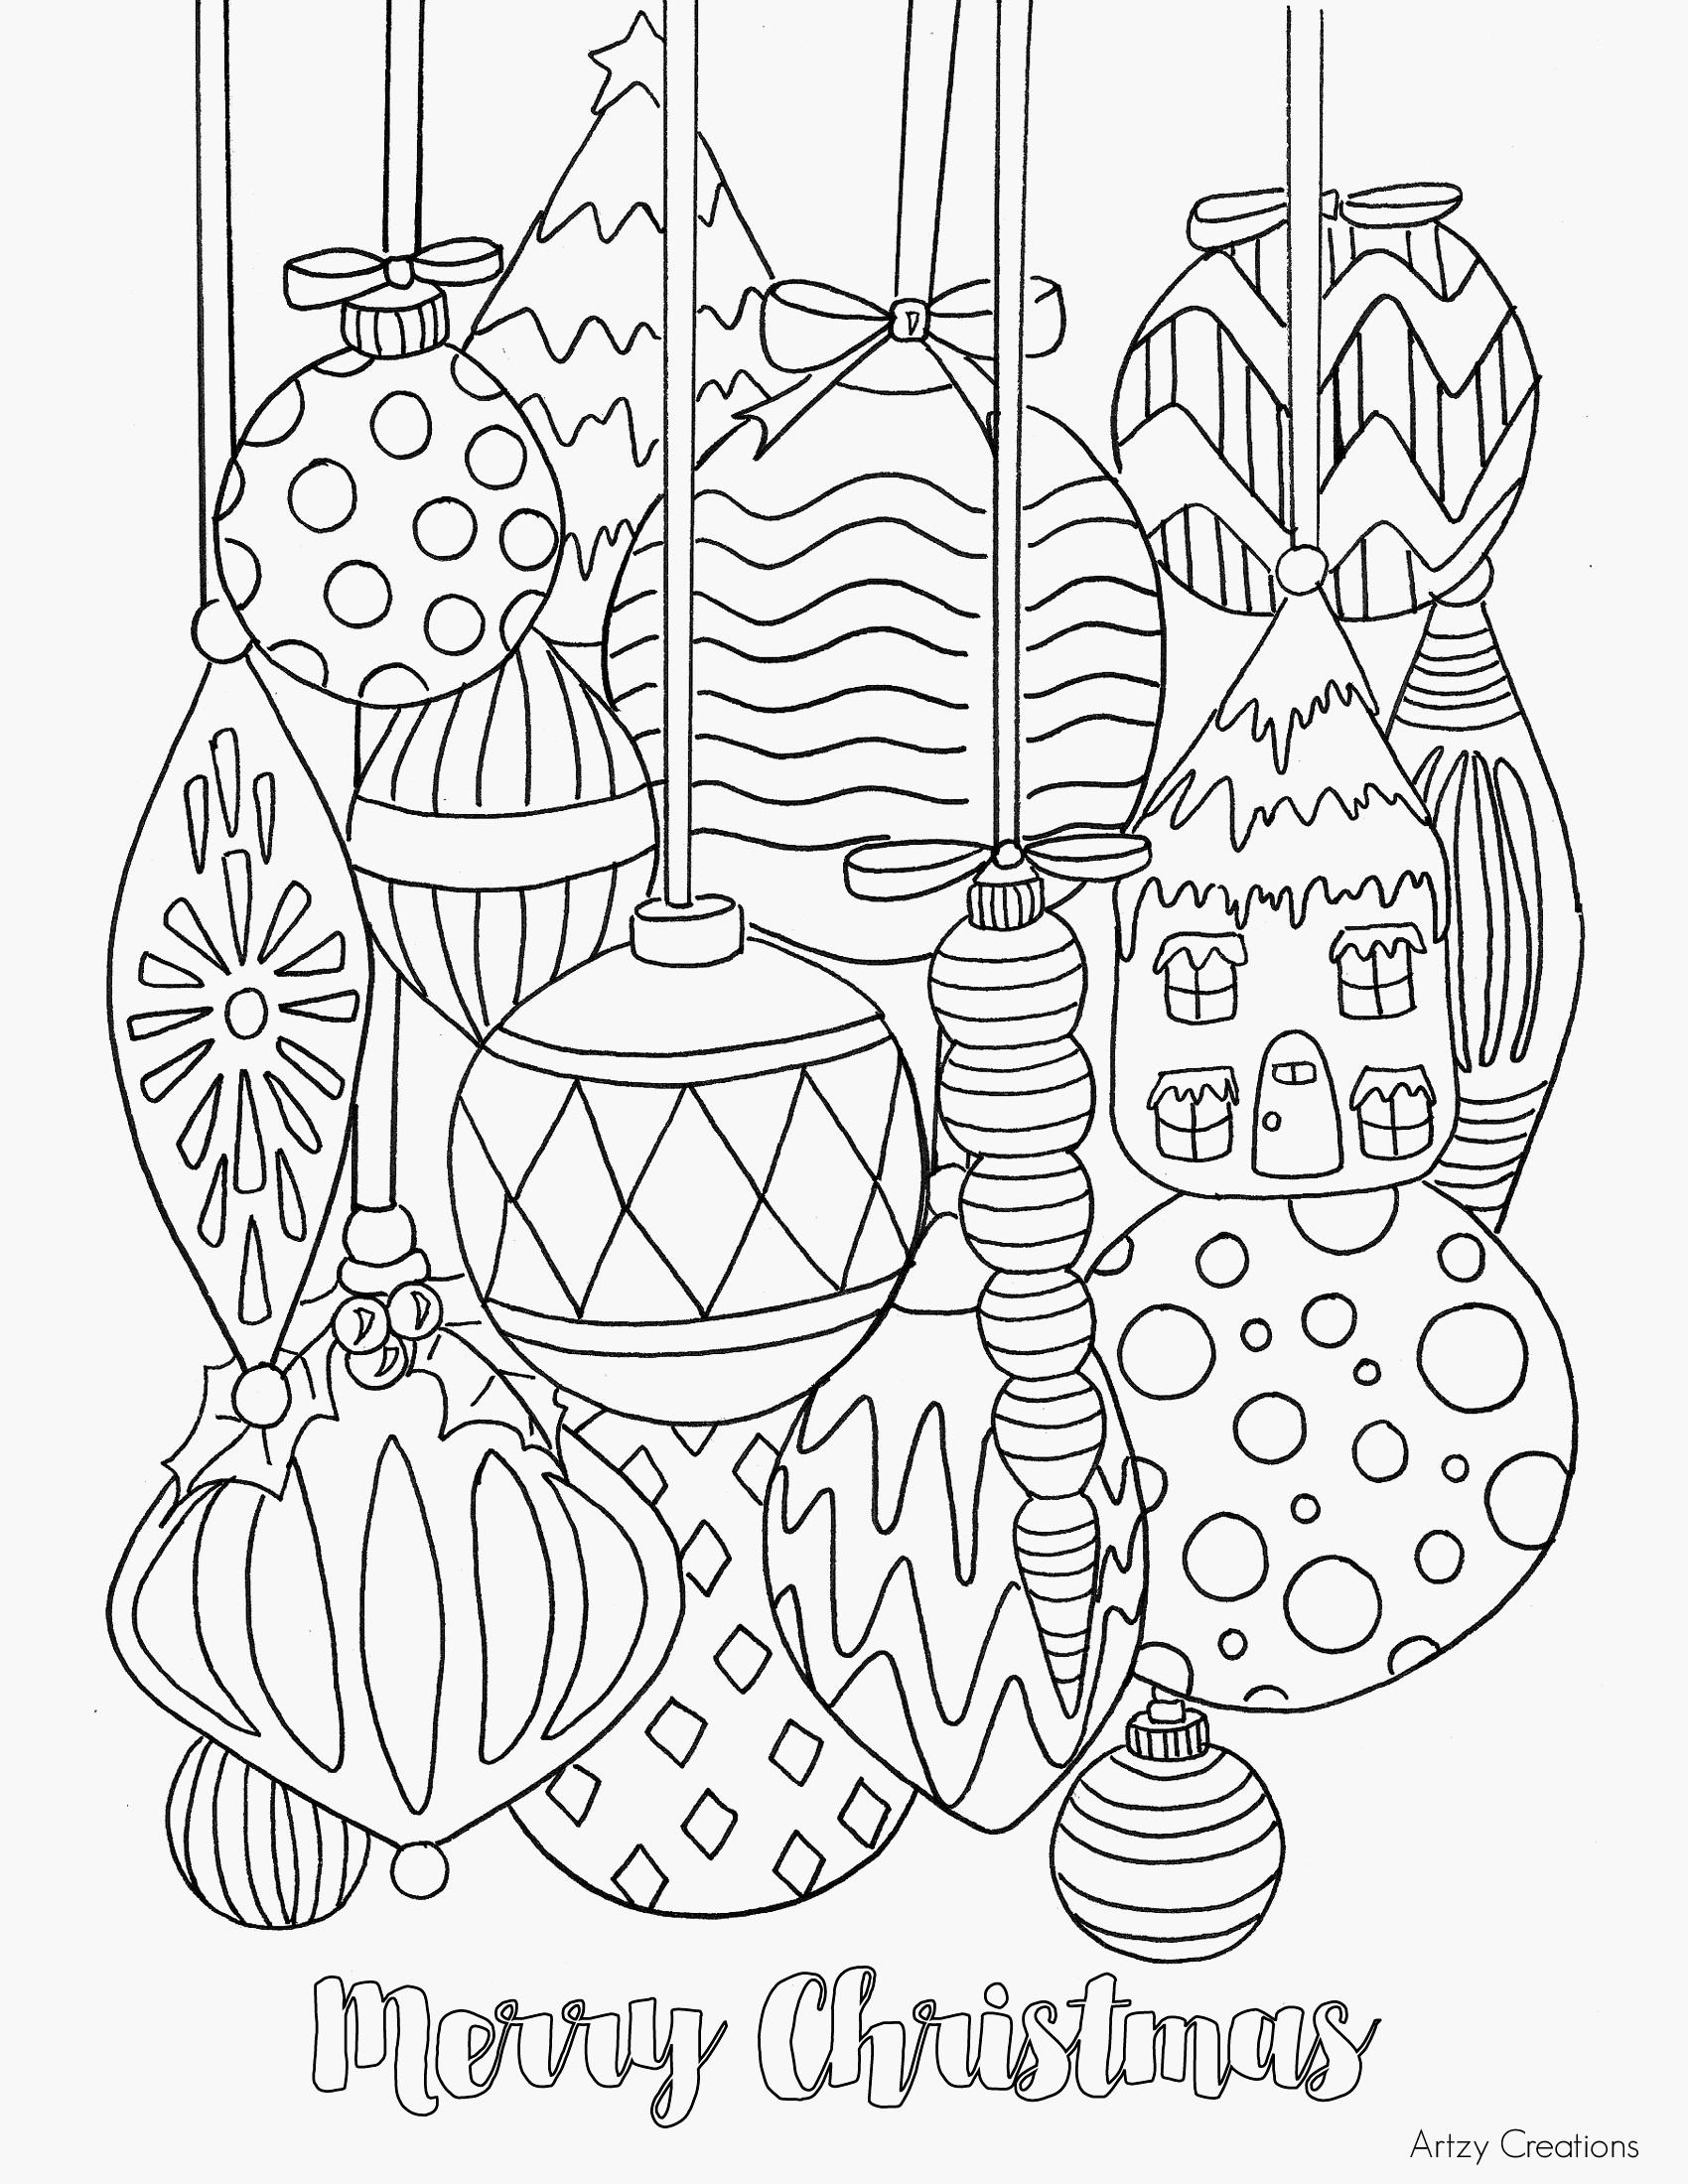 Winter Scene Coloring Pages  to Print 2m - Free For Children